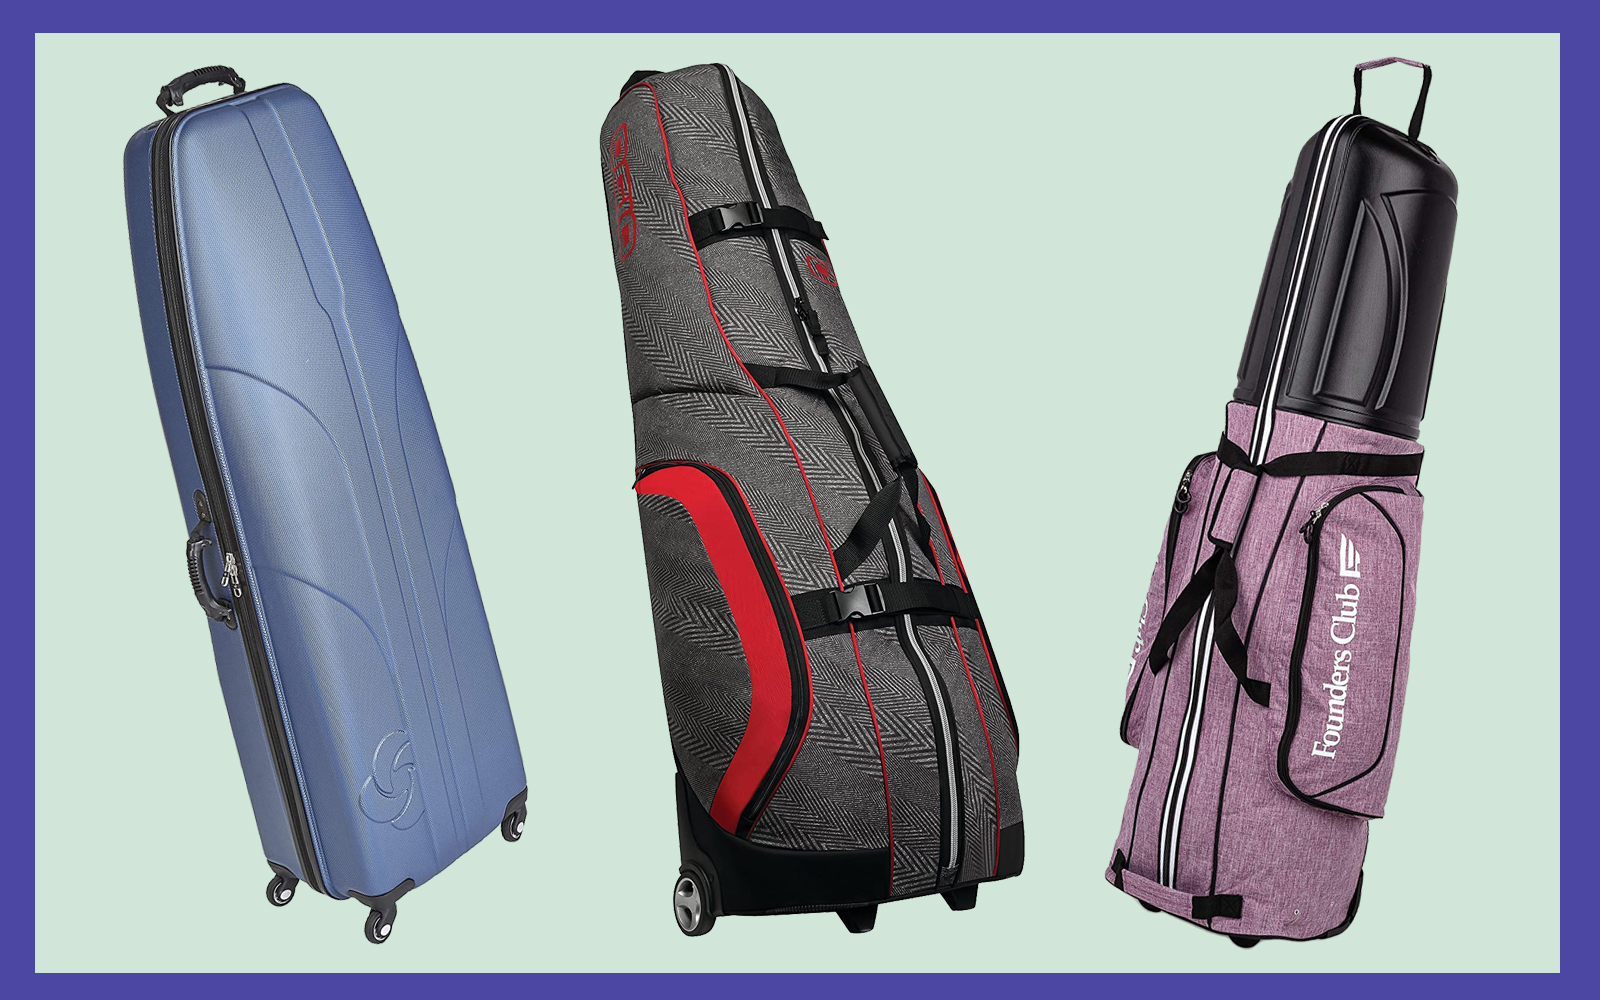 The 7 Best Golf Travel Bags In 2021 According To Reviews Travel Leisure